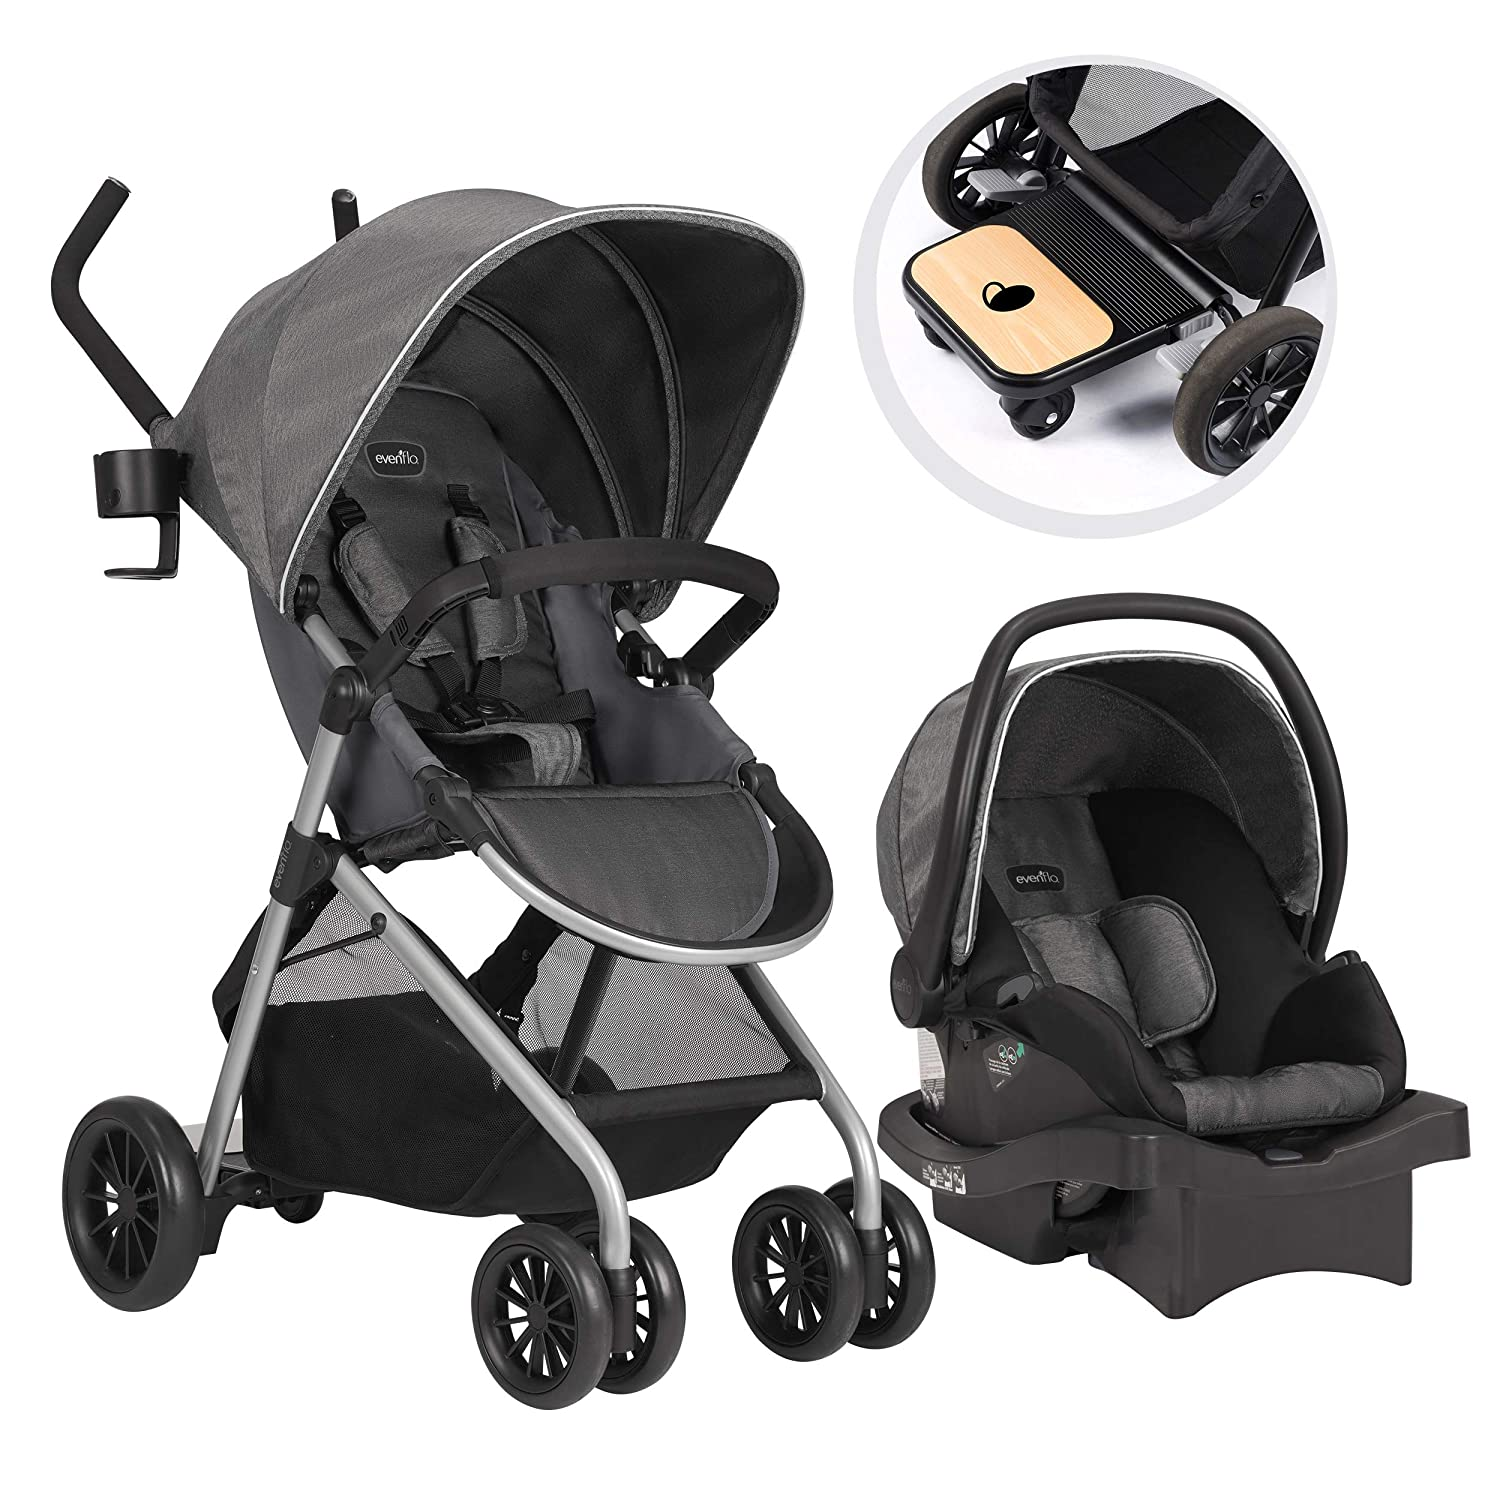 Evenflo Sibby Travel System, Charcoal Evenflo -- Dropship 56231975